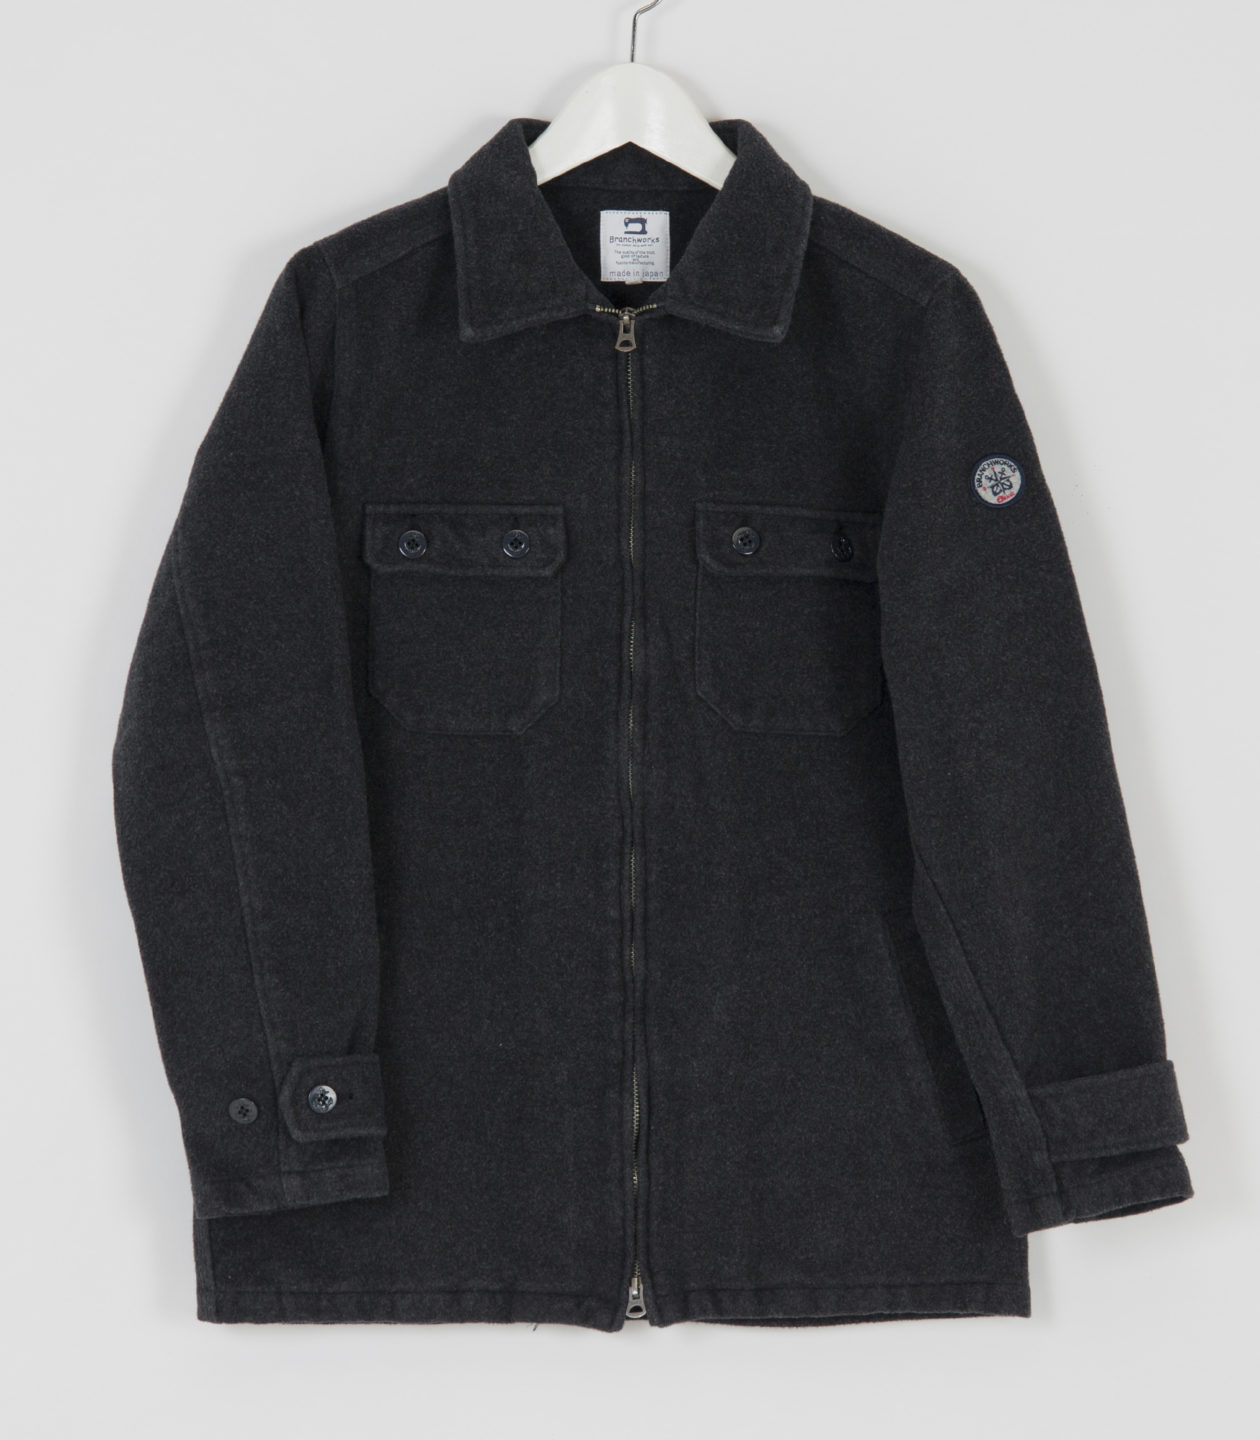 DS3-5000 charcoal